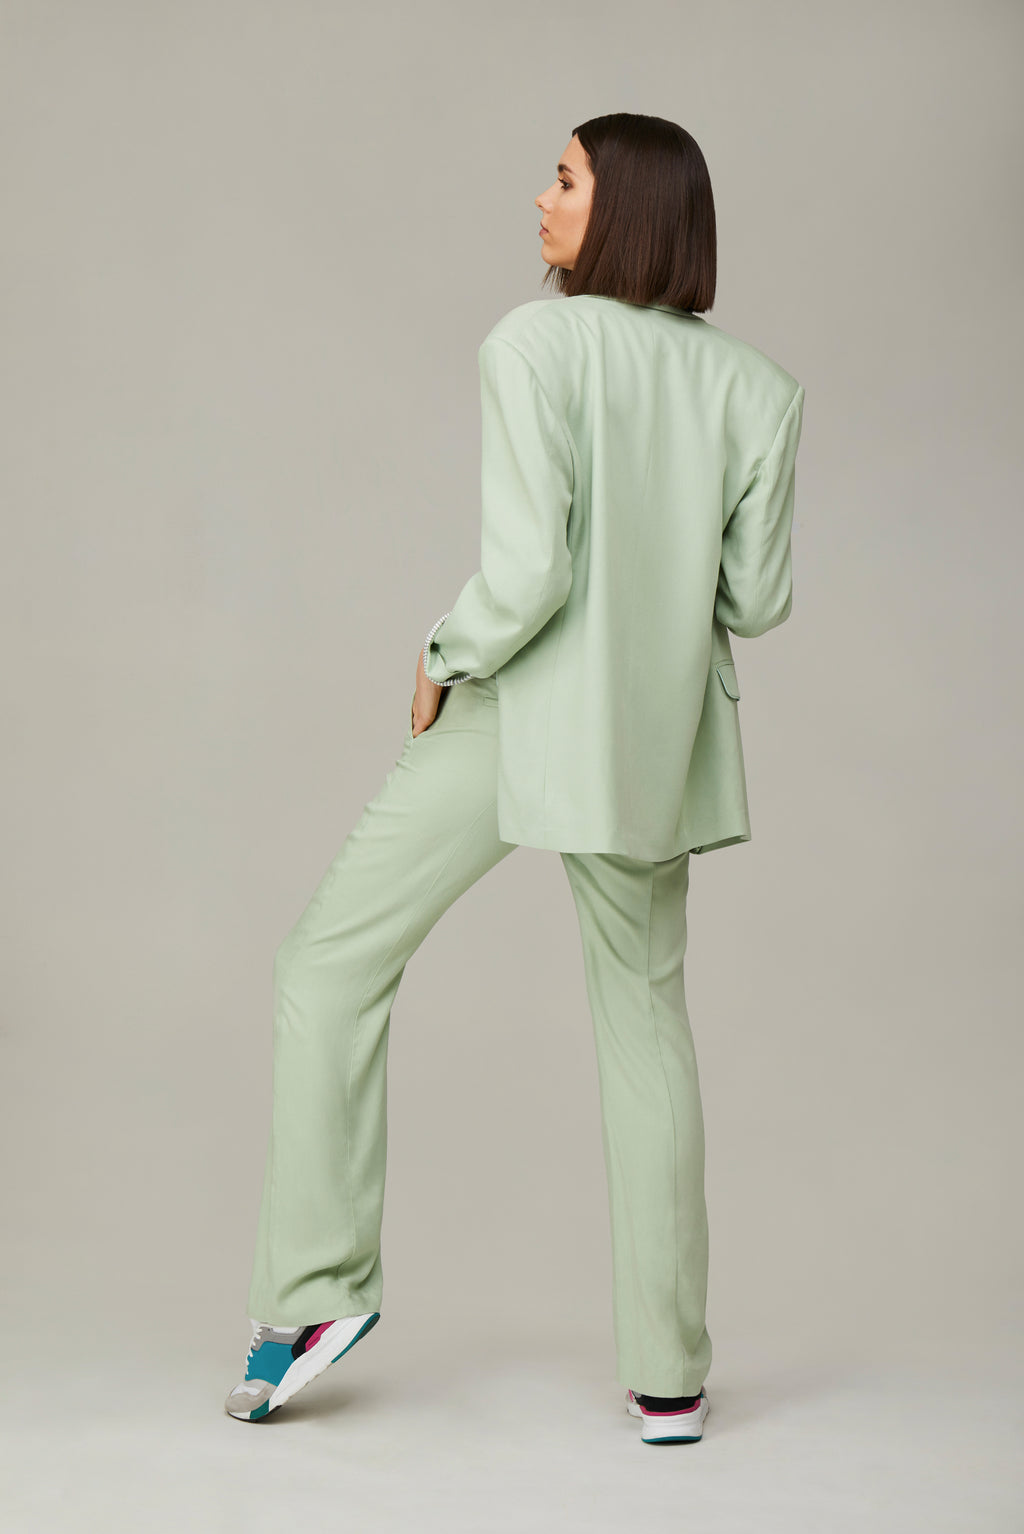 The Mint Green Lover Blazer